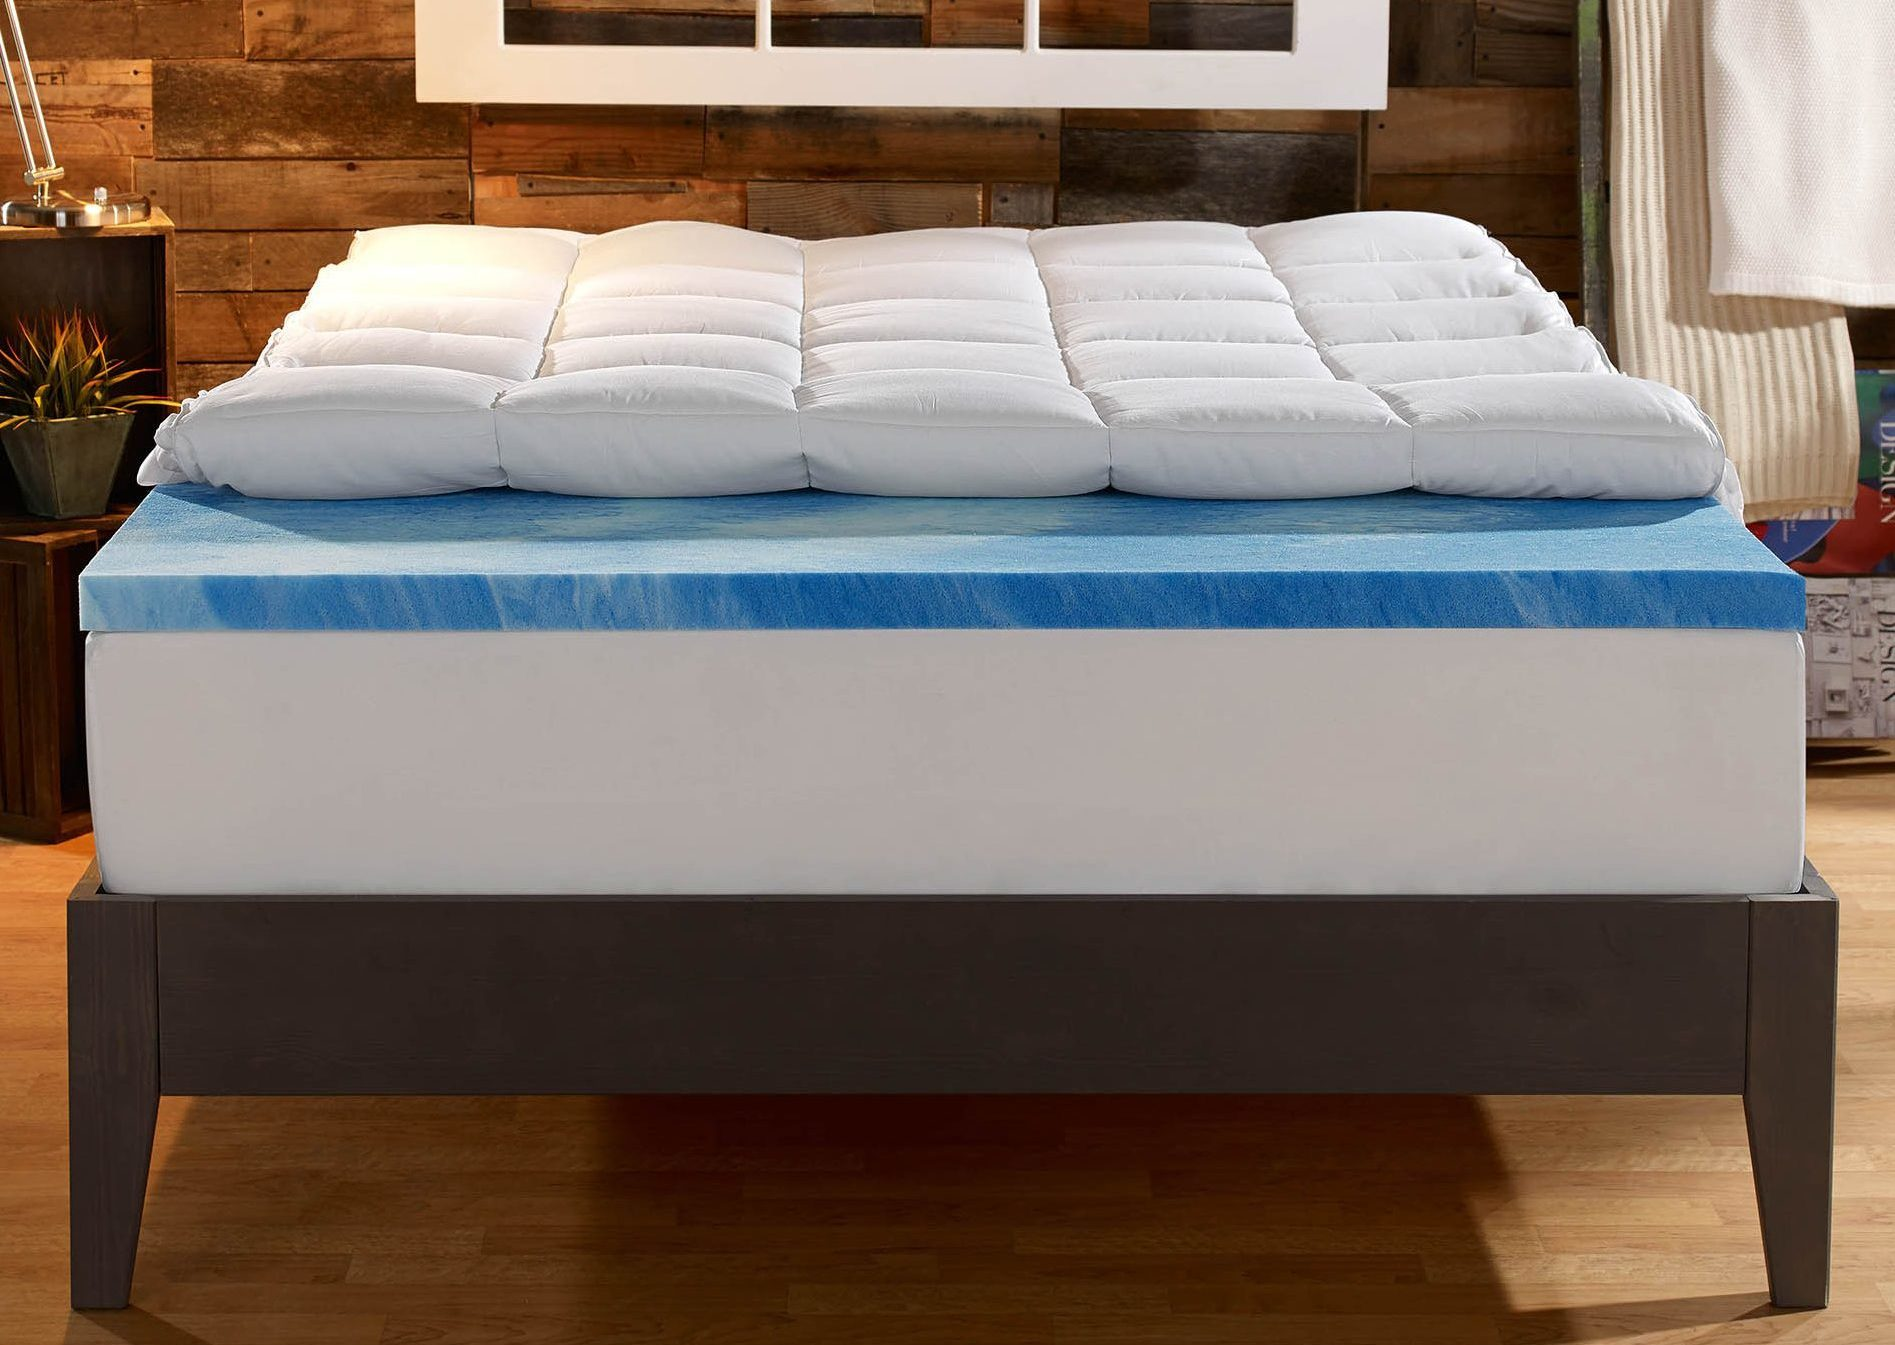 Sleep innovation mattress- Mattress for back pain